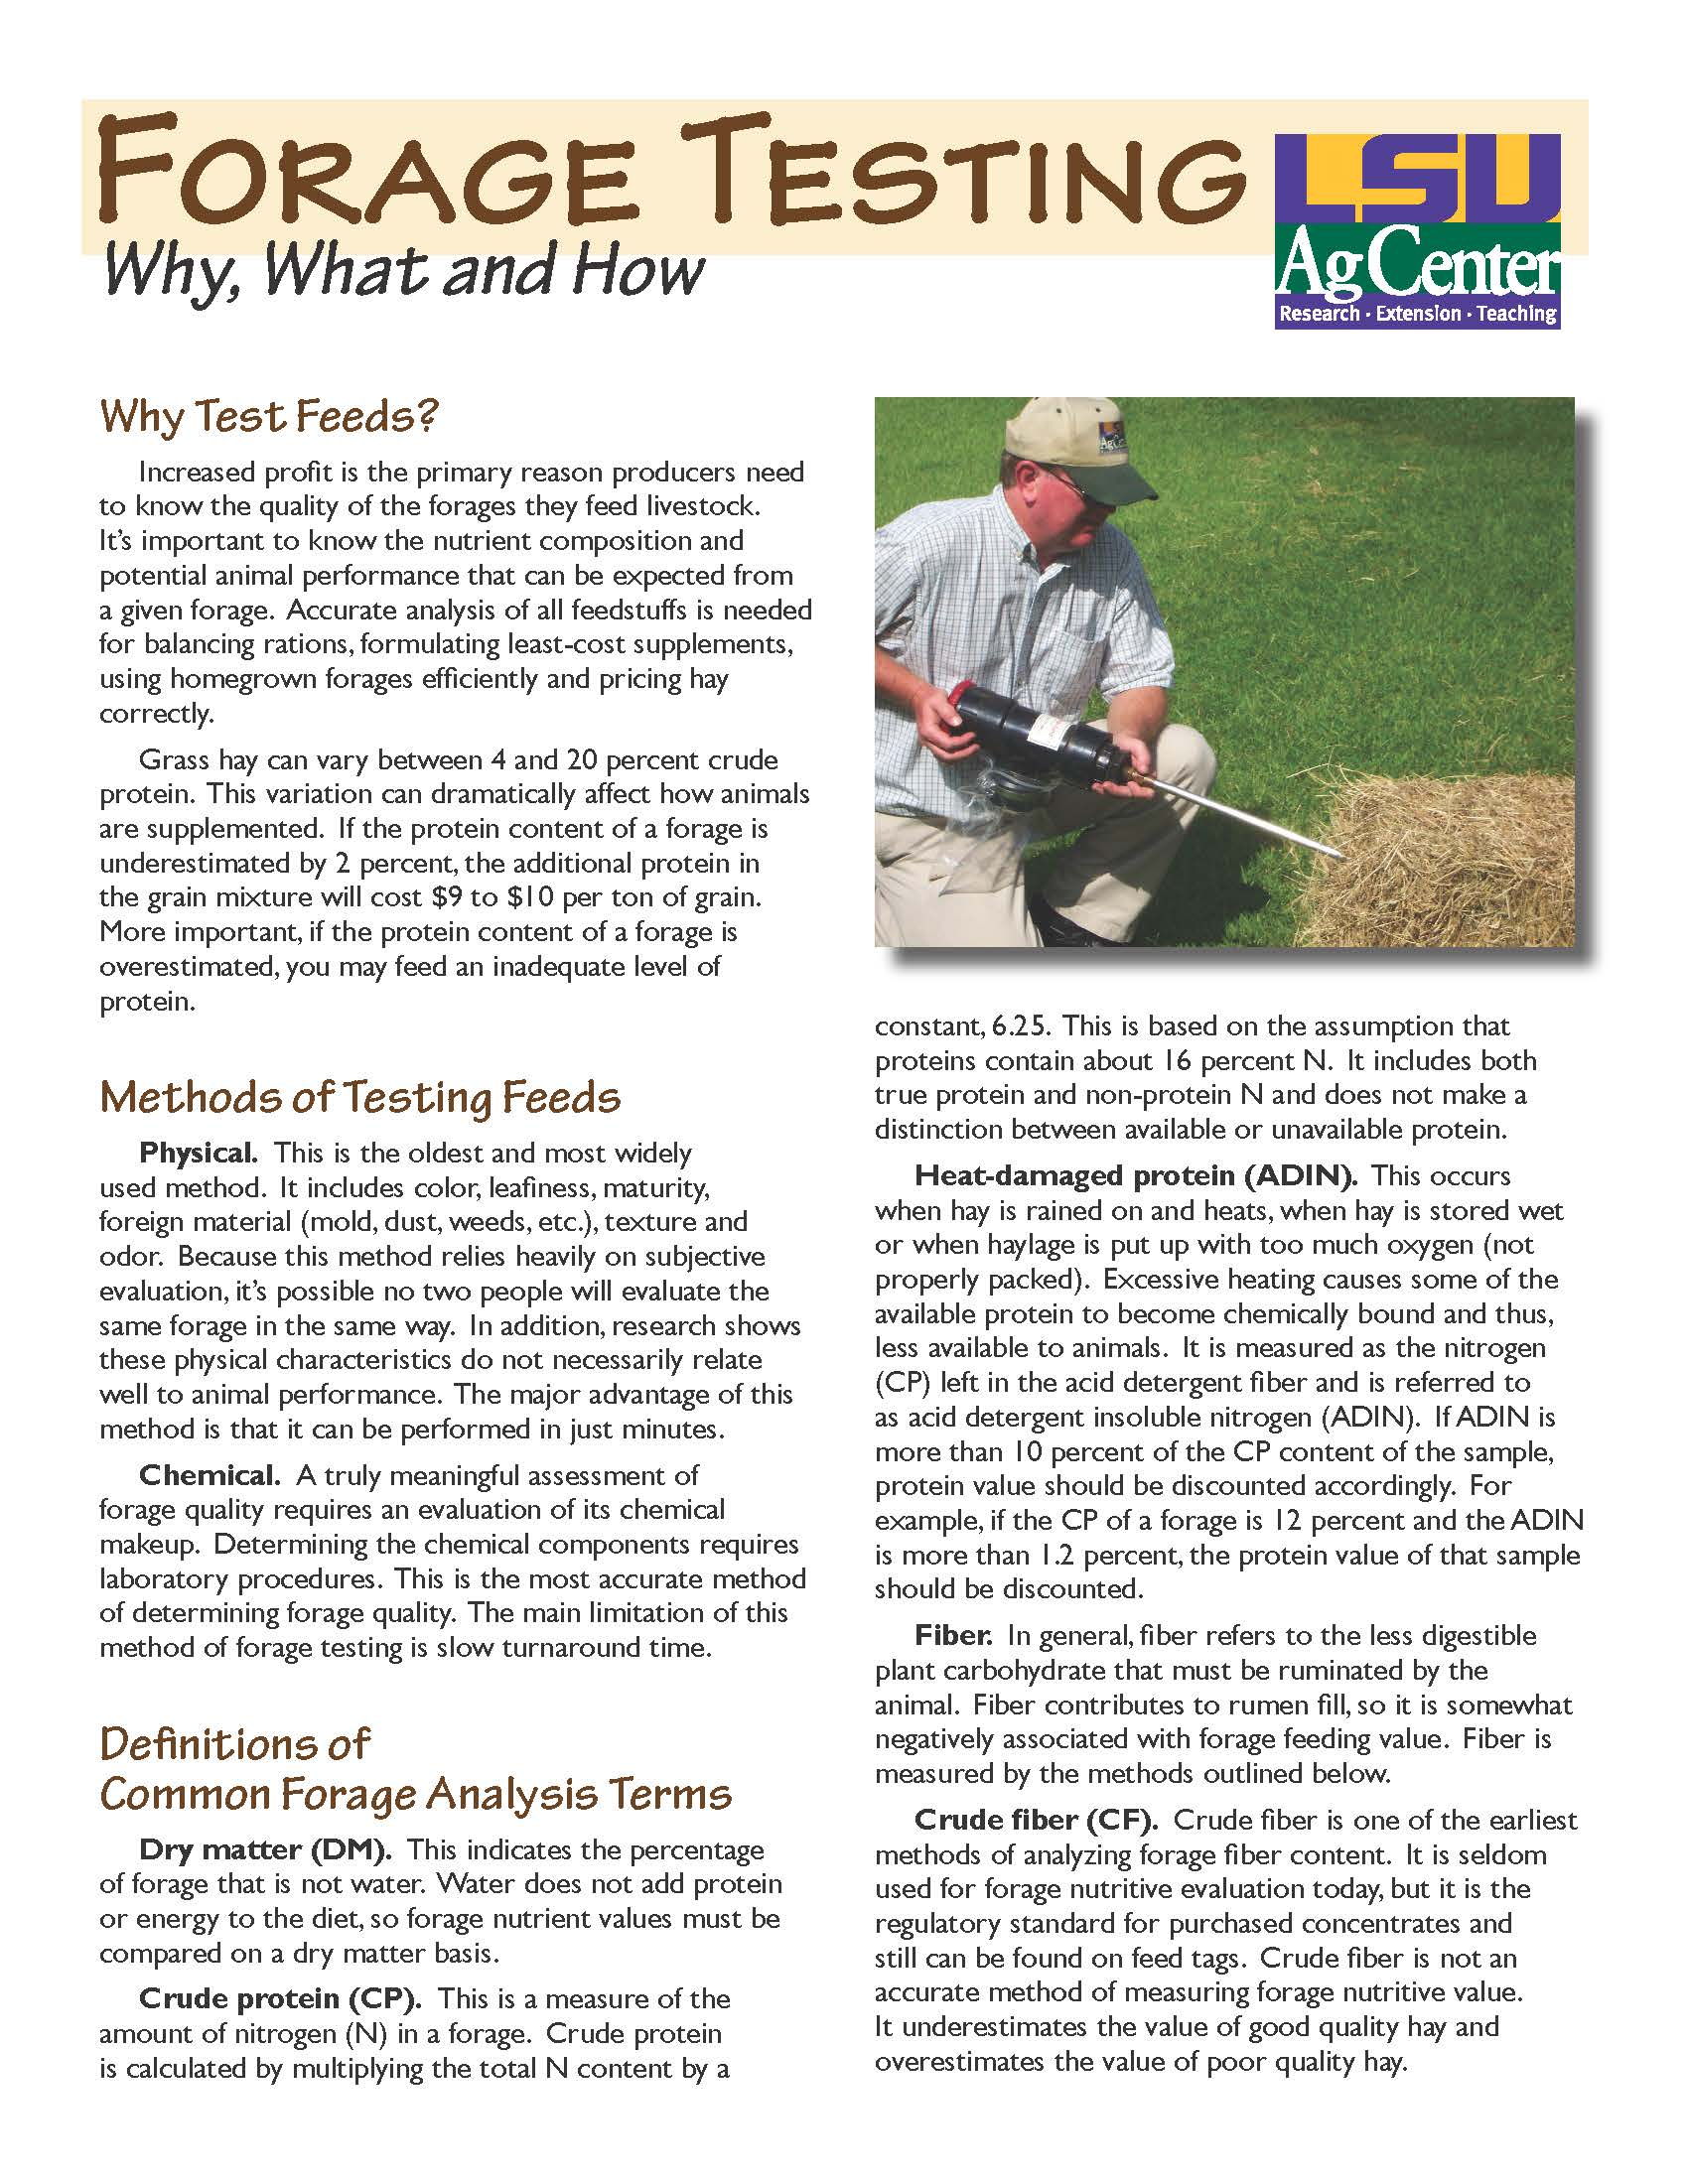 Forage Testing:  Why, What and How